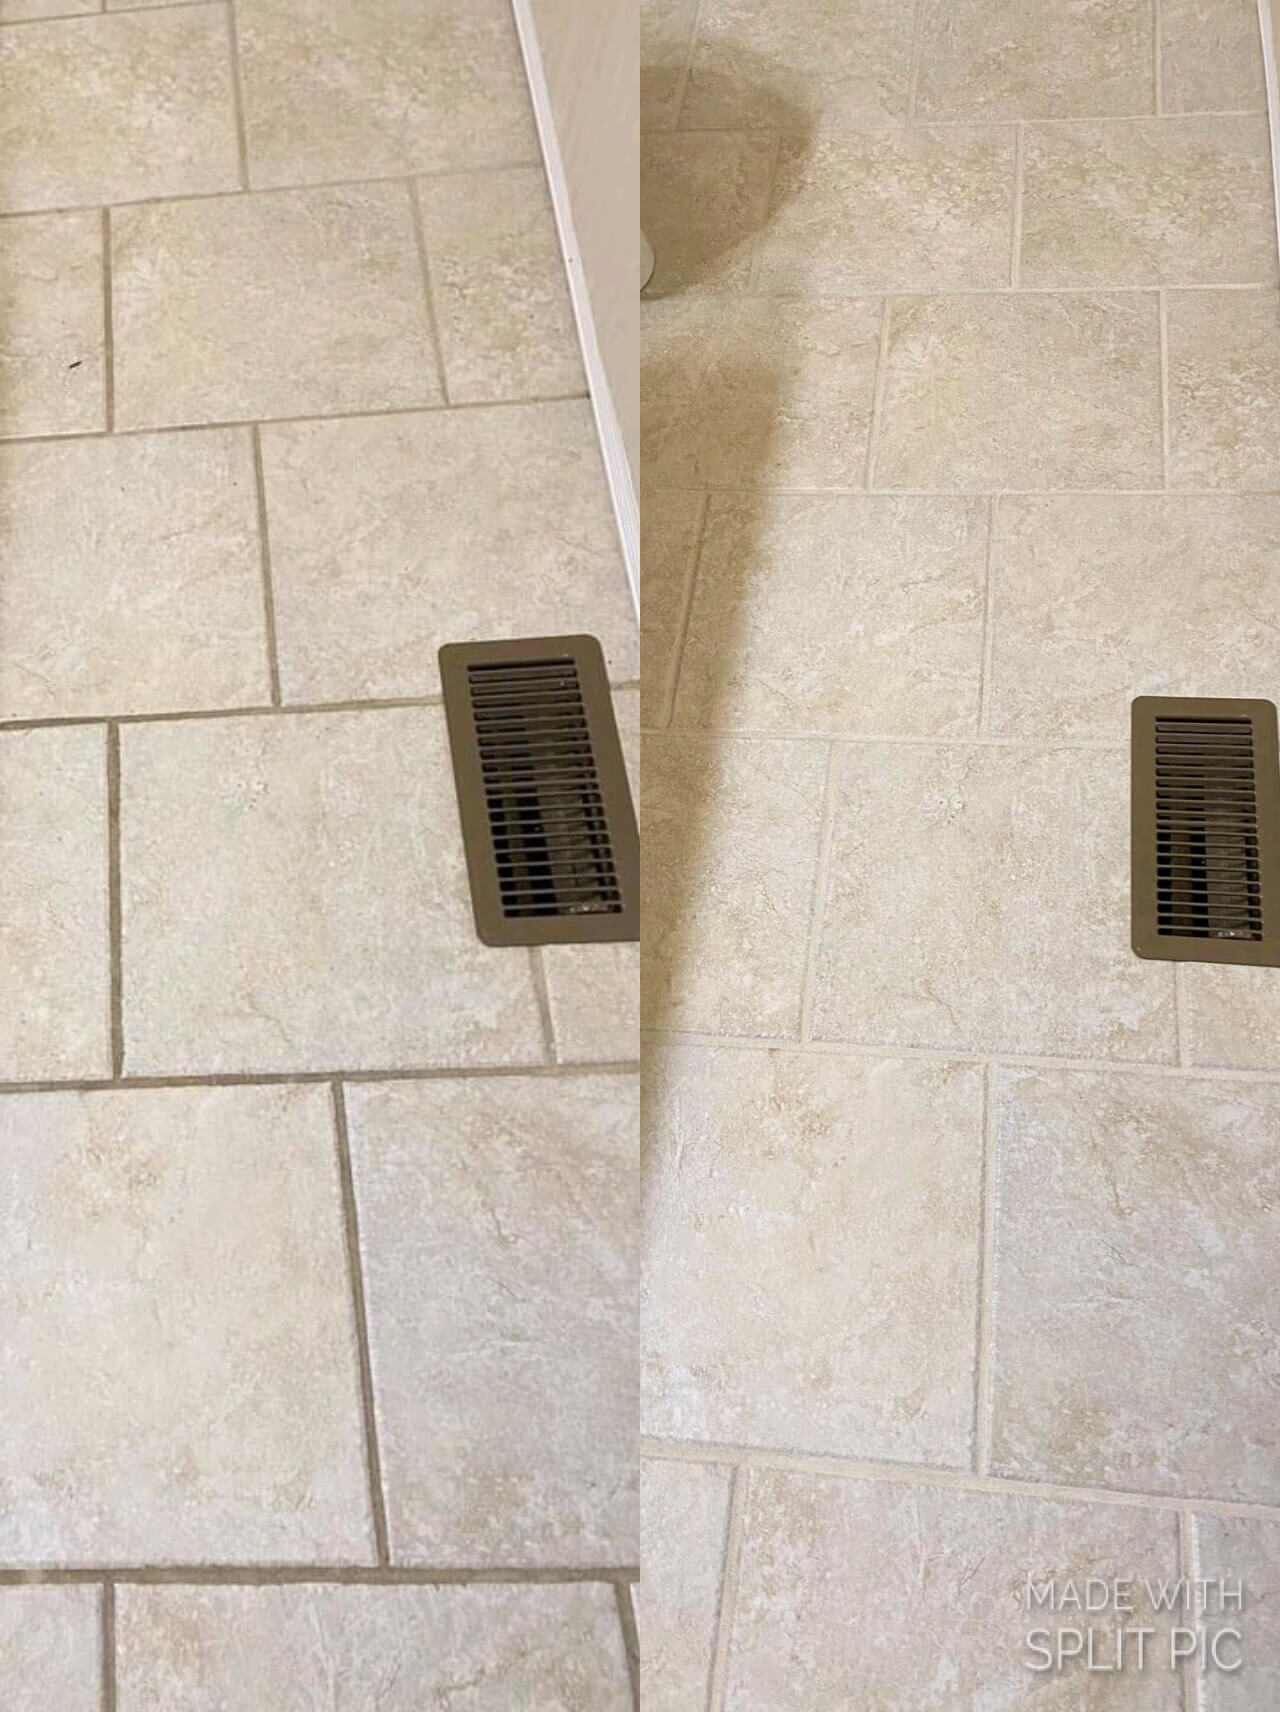 Novasteam is a Martindale professional tile & grout cleaning services company